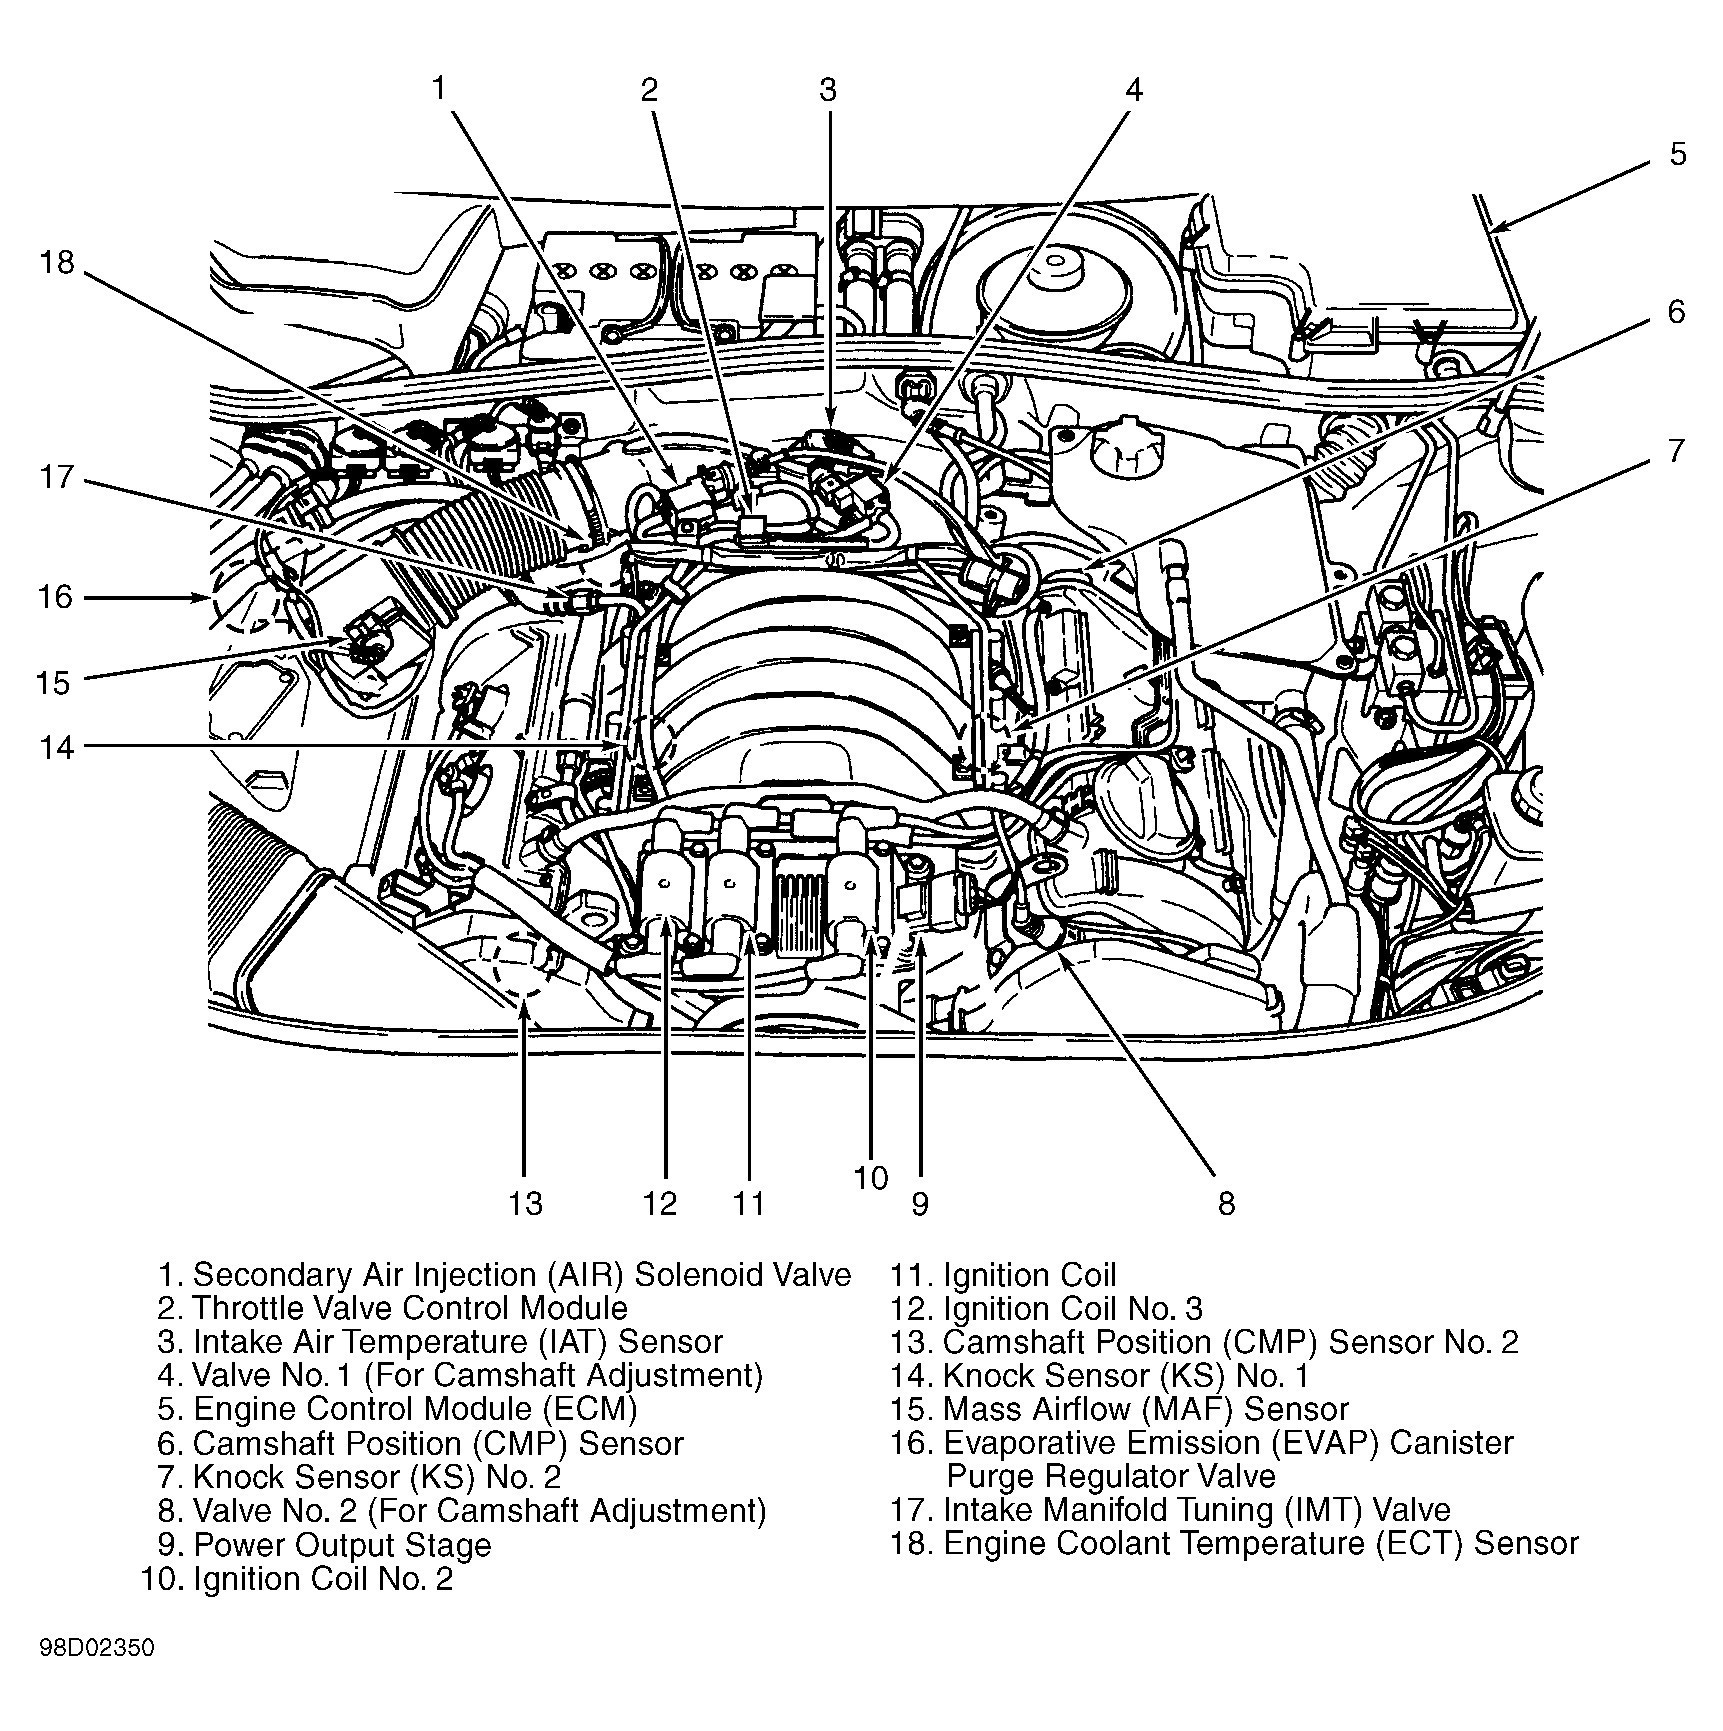 2000 Dodge Intrepid Engine Diagram Start Building A Wiring 99 Cool Review About Es With Amusing Gallery Rh Movingintoluminosity Com 59 27